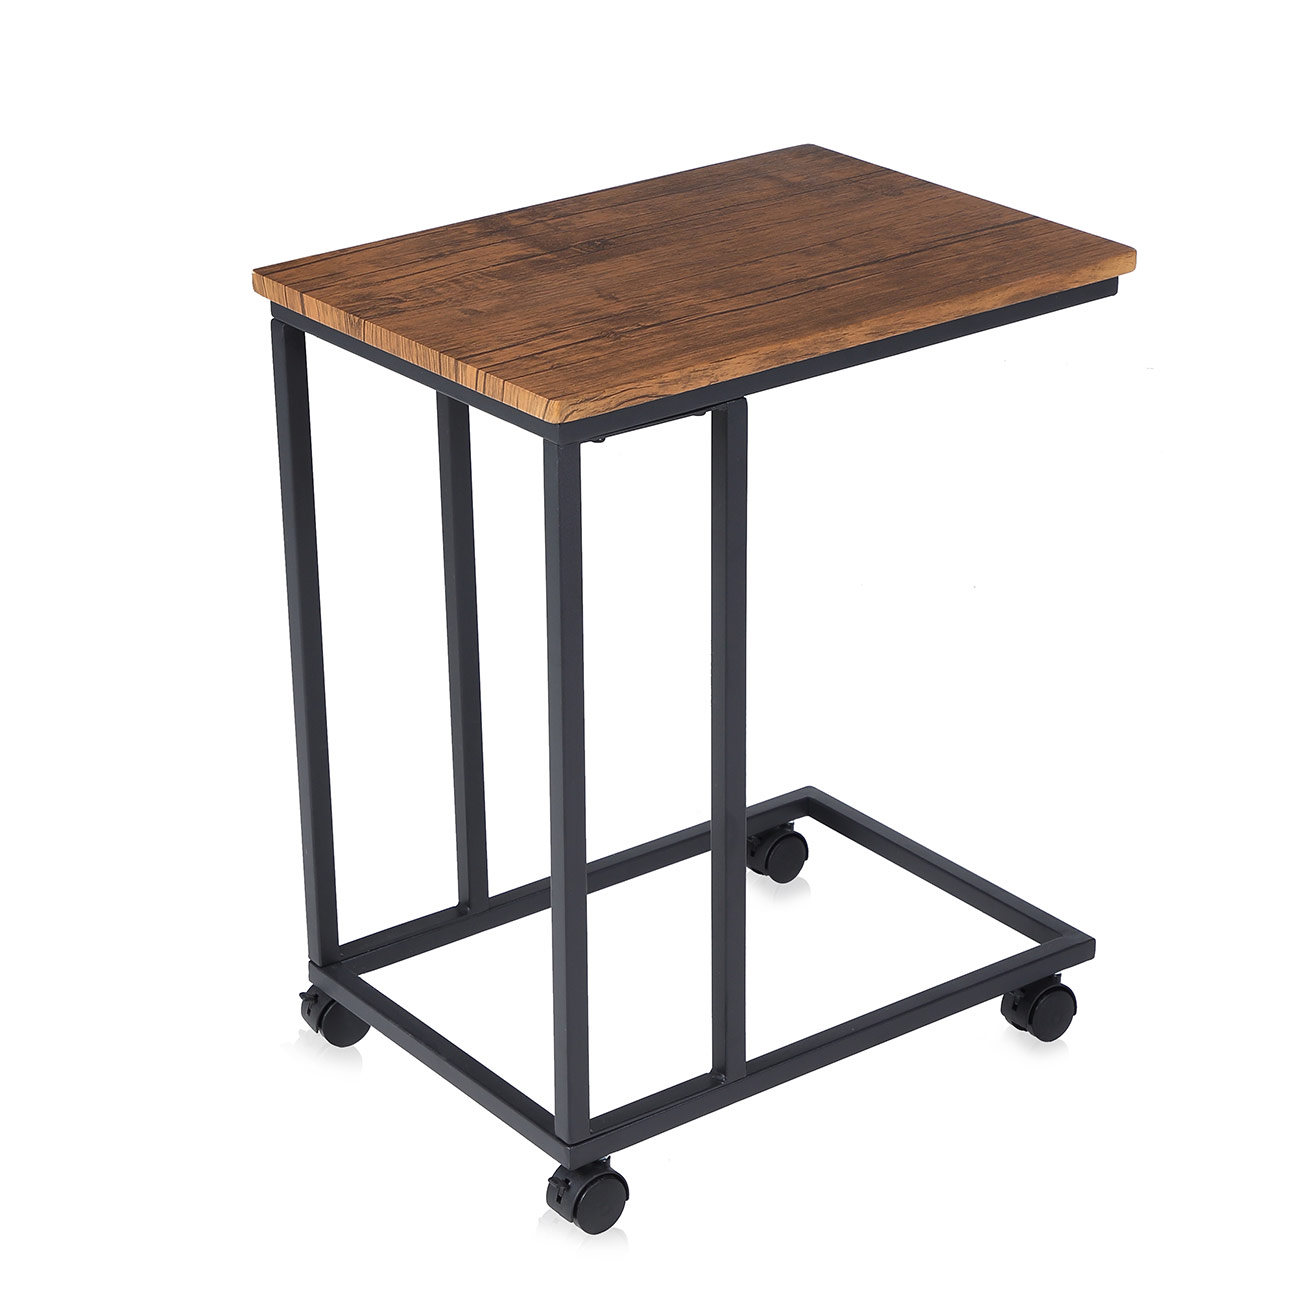 Makika Vintage Design Side Table / Coffee Table with 2 different wheels  (with and without brakes) | MA Trading